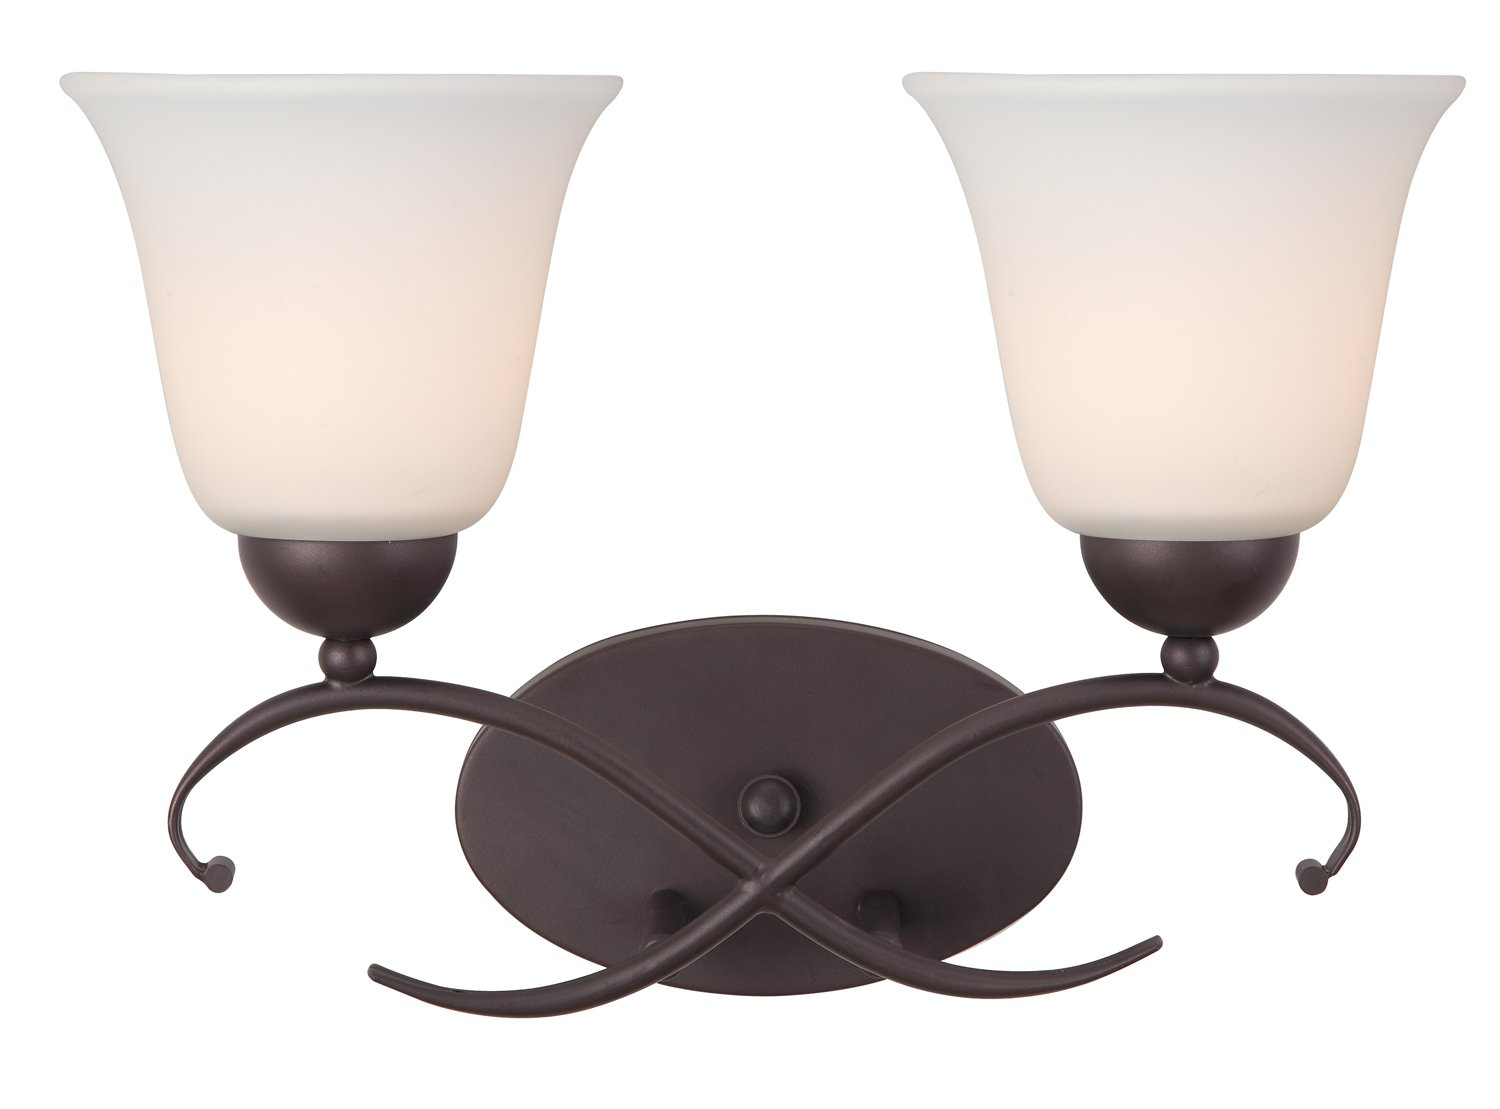 Canarm IVL424A02ORB Lily 2-Light Bath Vanity Light by Canarm